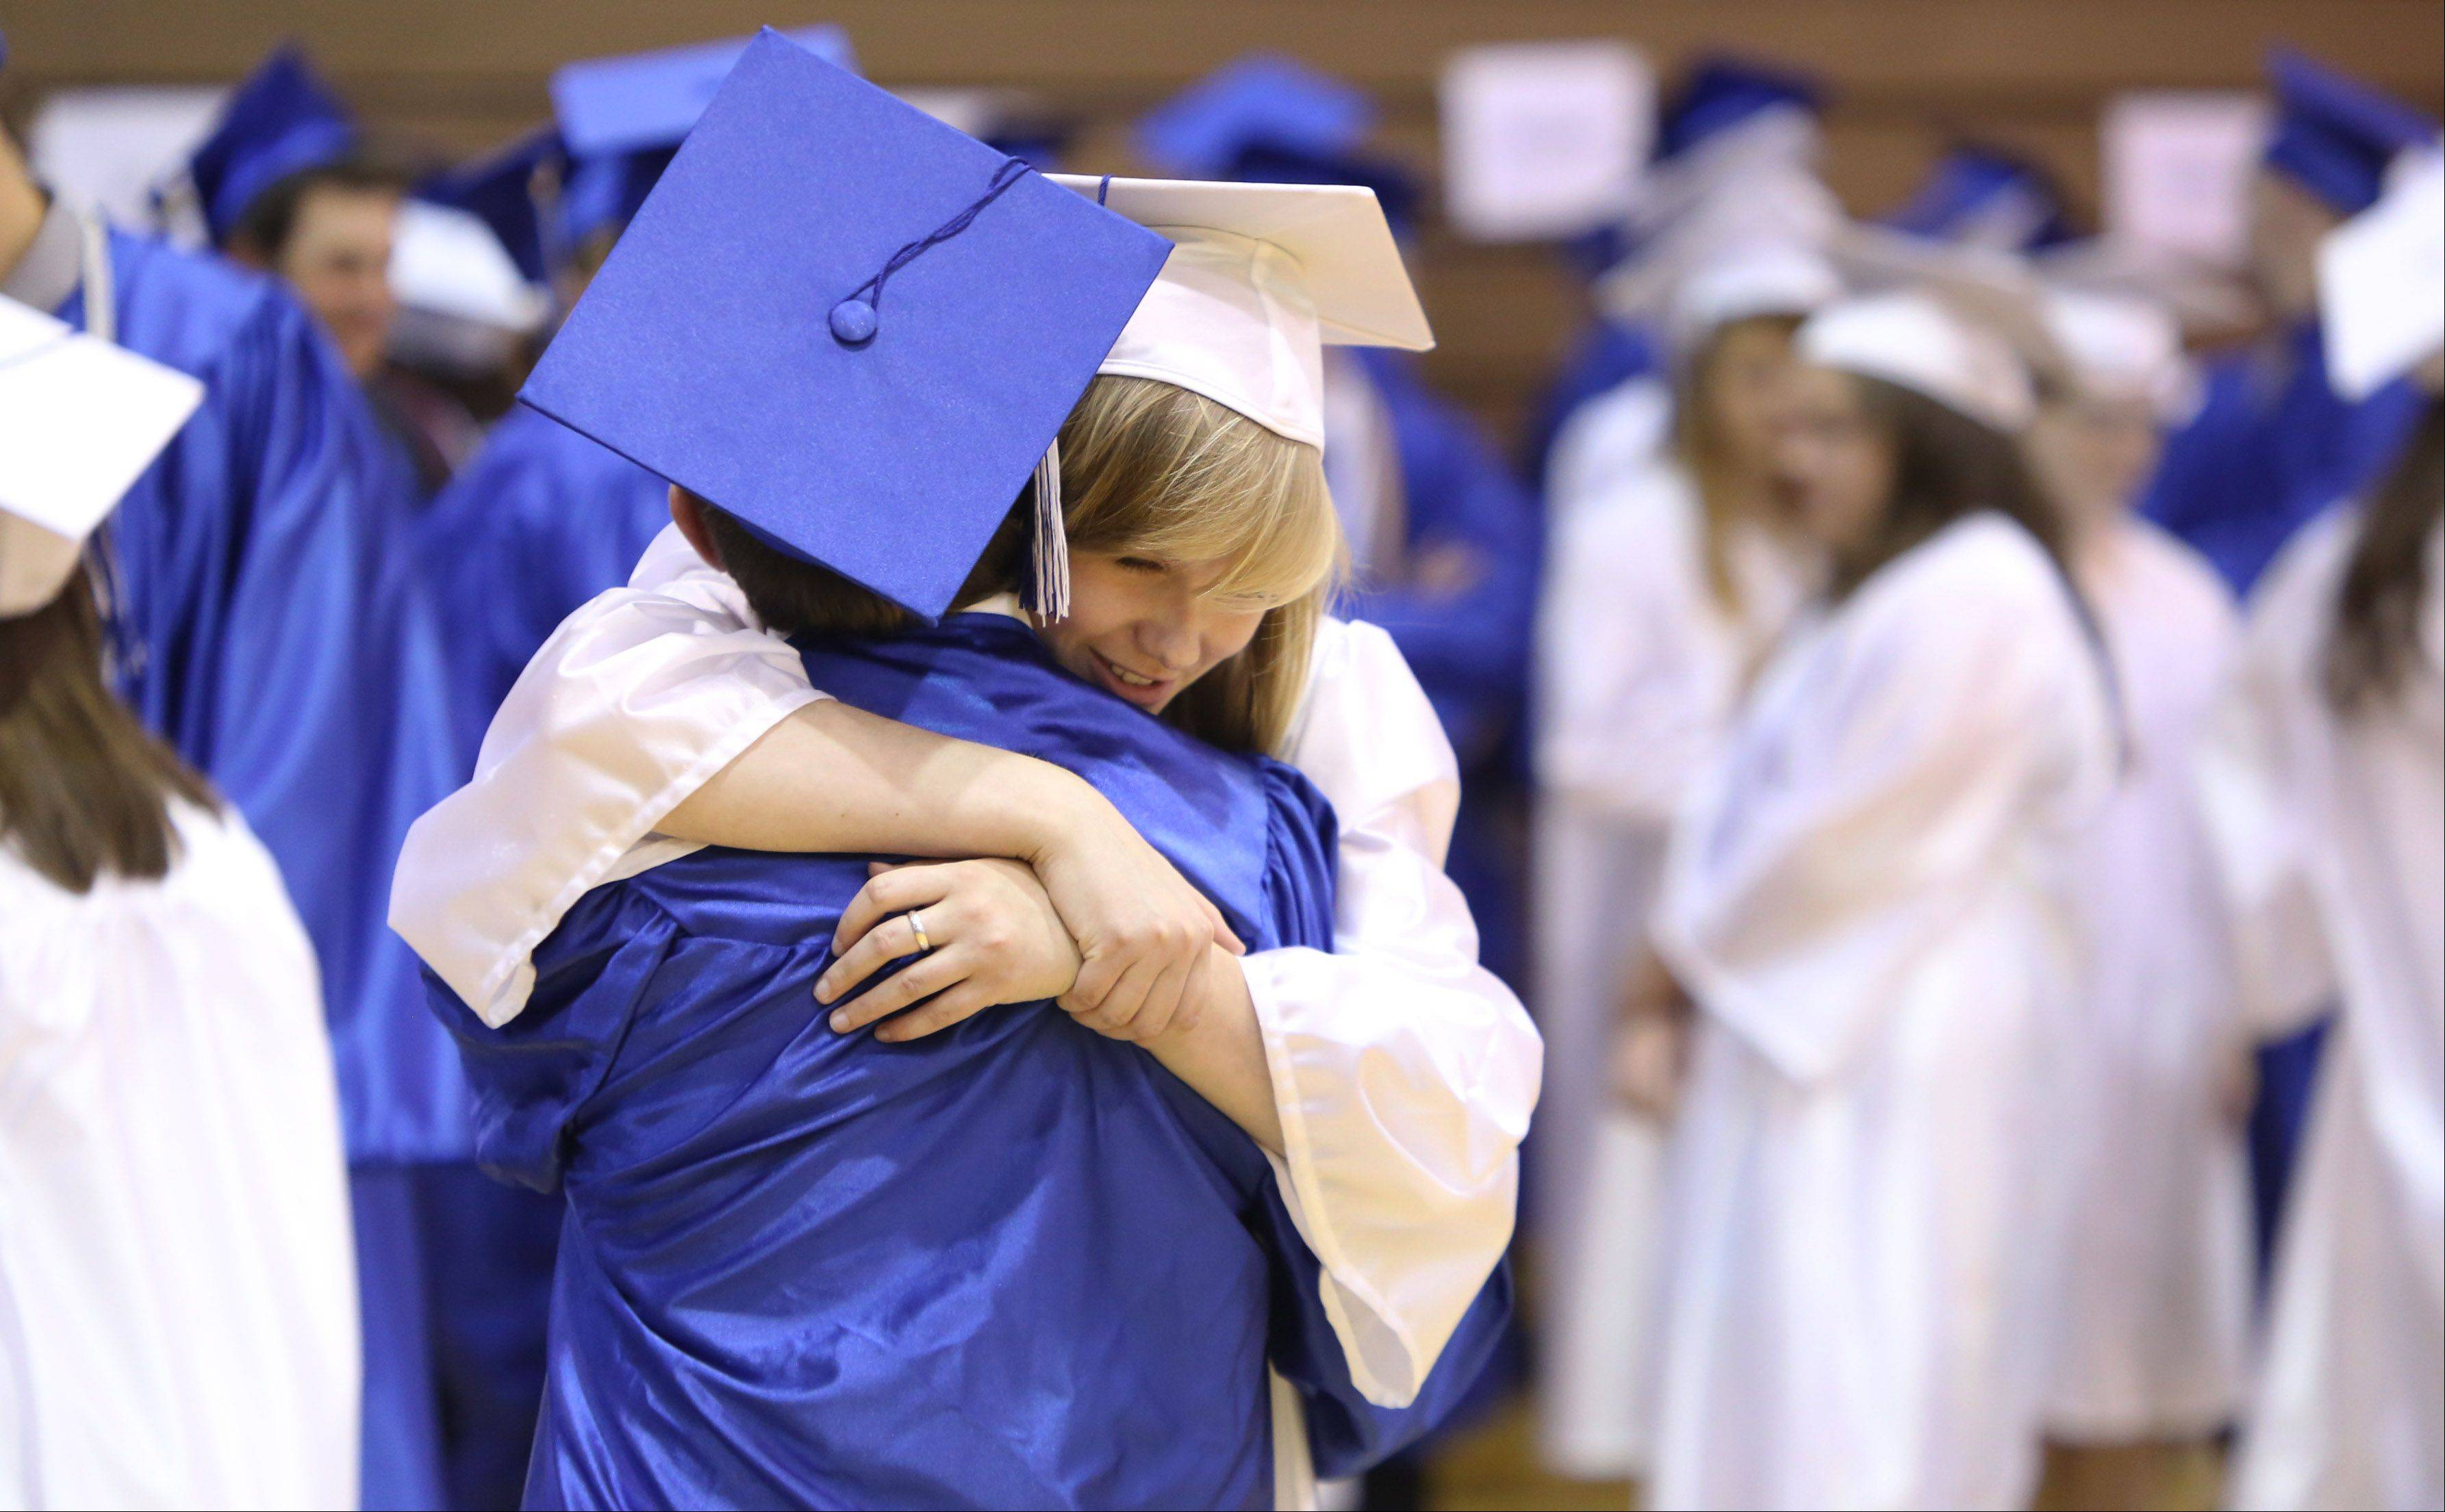 Katie Dunbar hugs Giacomo Black during the Lake Zurich High School graduation ceremony on Sunday. There were 542 seniors graduating this year at the school.